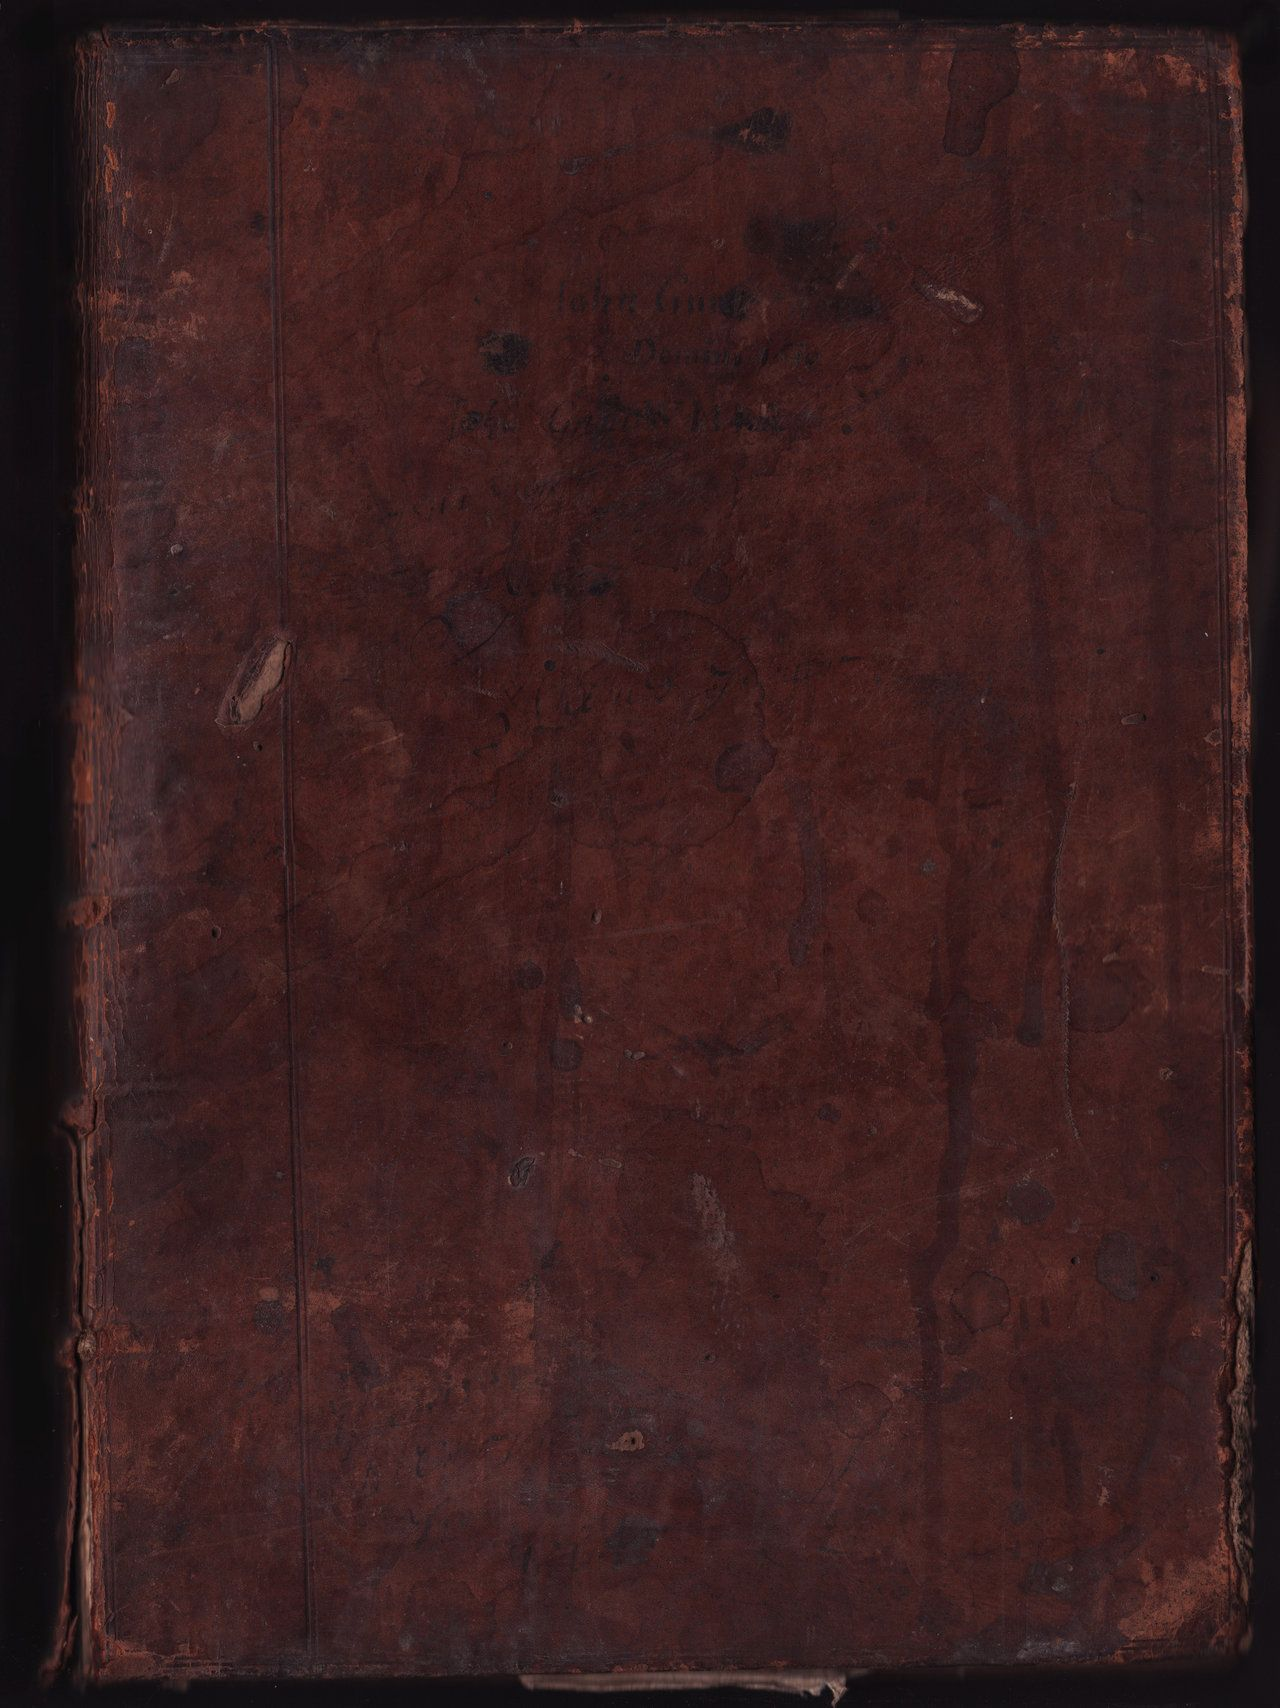 Old Leather Book Cover Texture : Old leather book by enginemonkey on deviantart projects